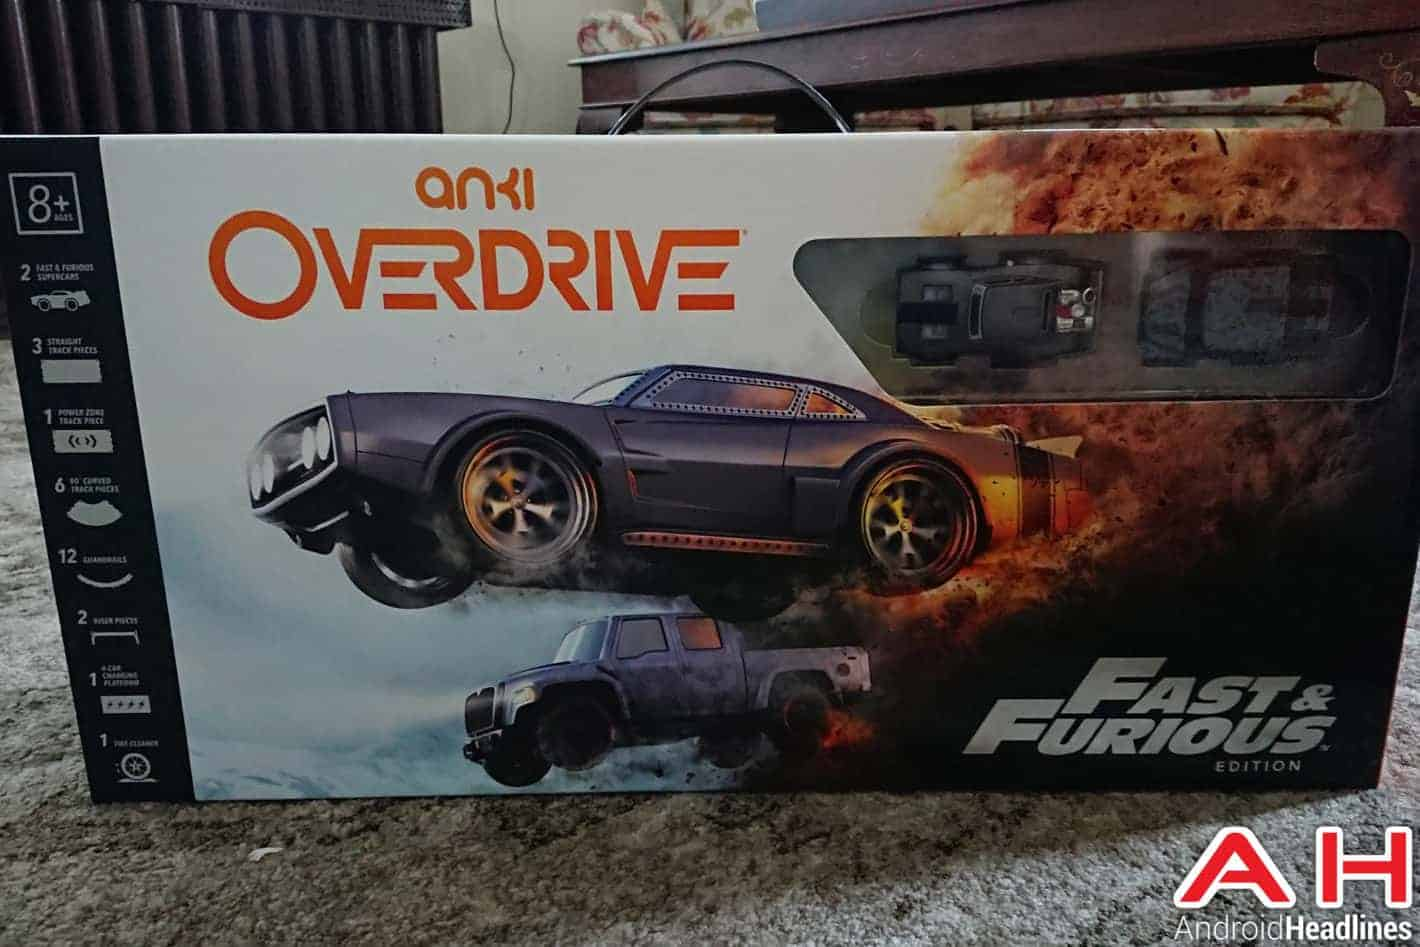 Anki Overdrive Fast Amp Furious Edition Now Available